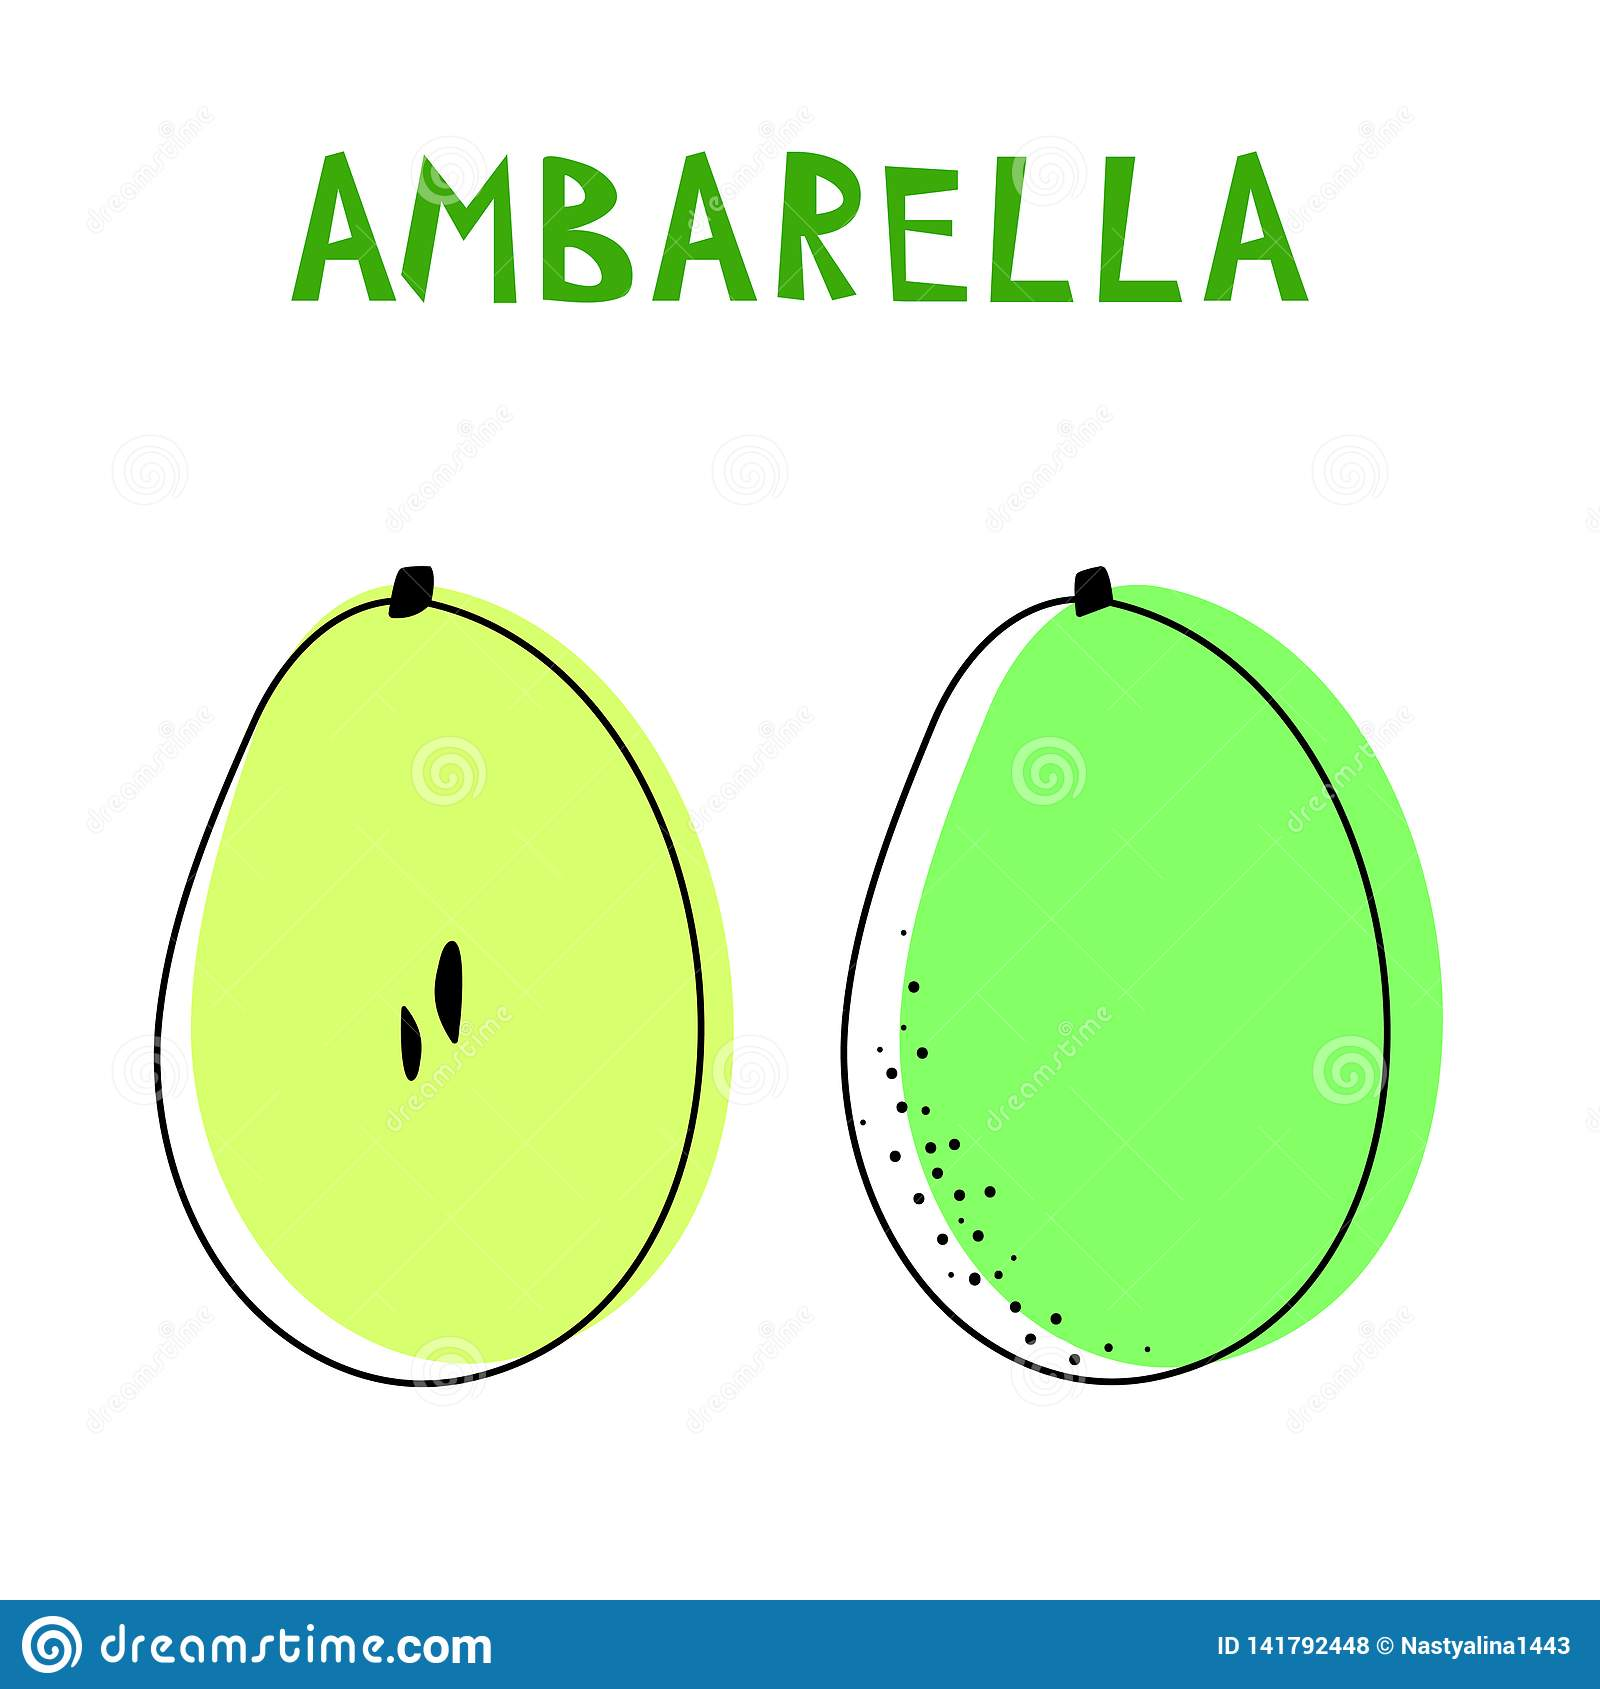 Set of two isolated ambarellas. Vector drawing of rare topucal exotic fruit - ambarella. Spondias dulcis, mombin, pomme cythere.